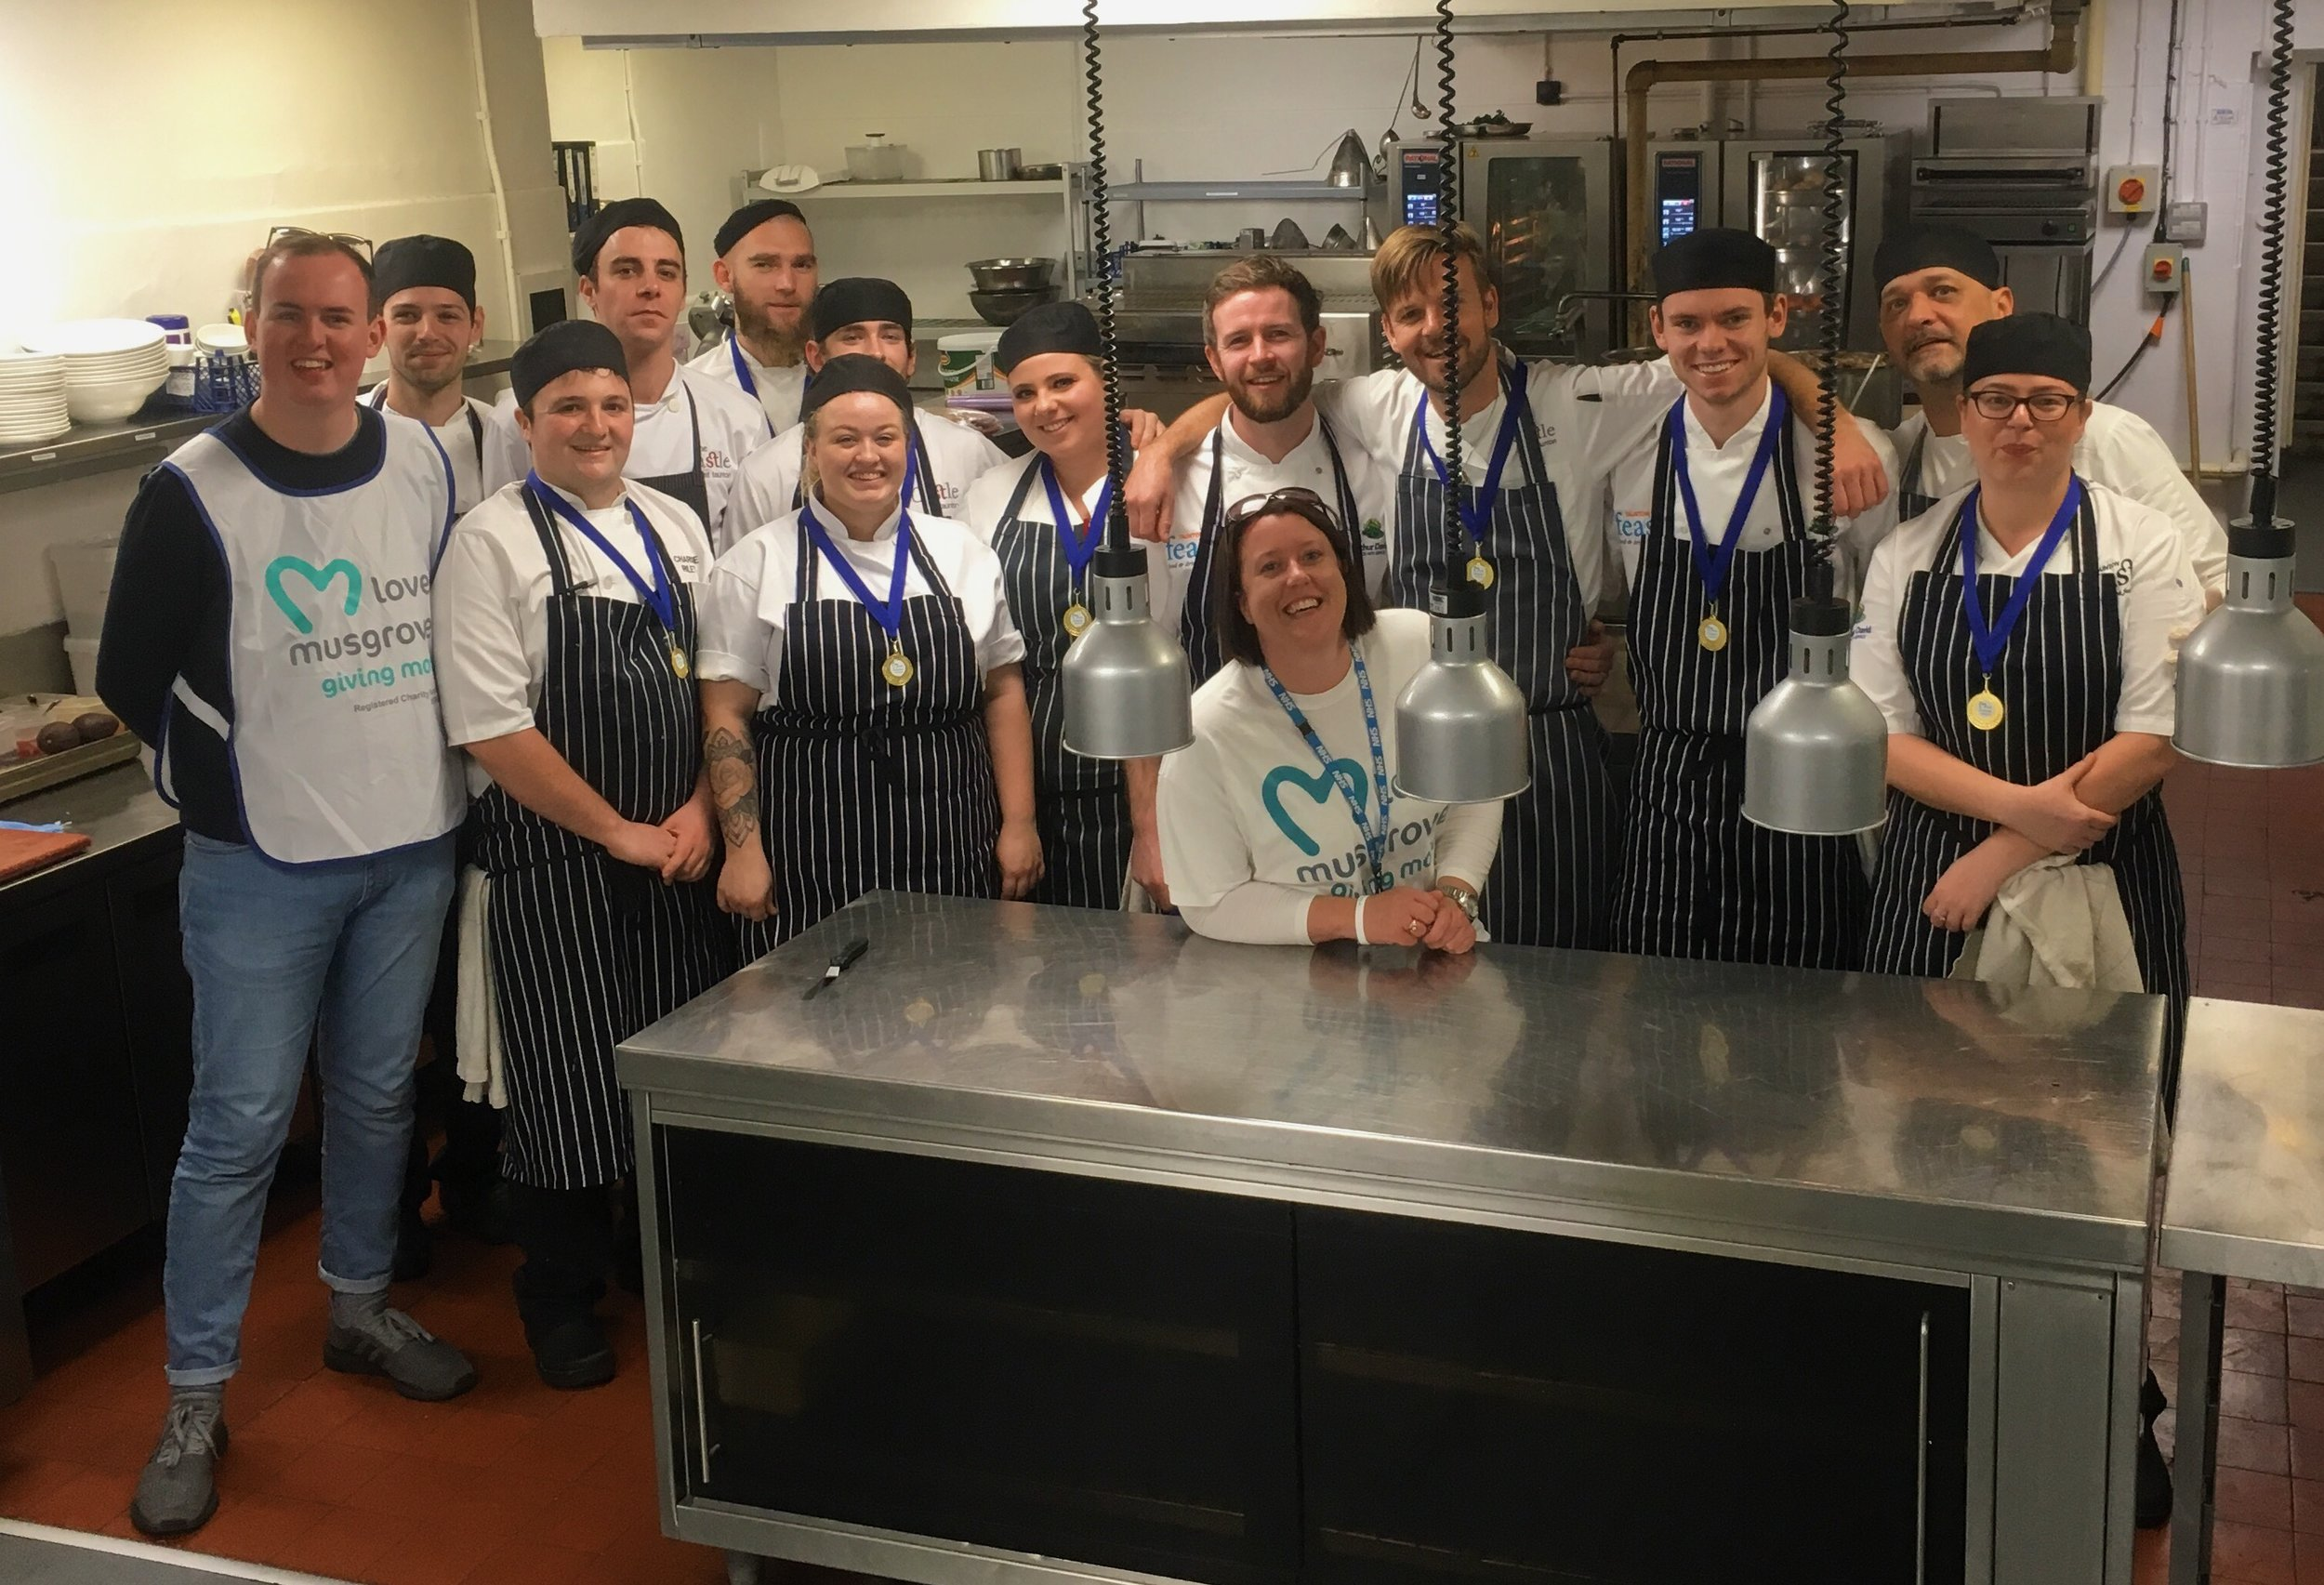 Staff at the Castle Hotel kitchen who helped to support the Campaign at Feast 2018